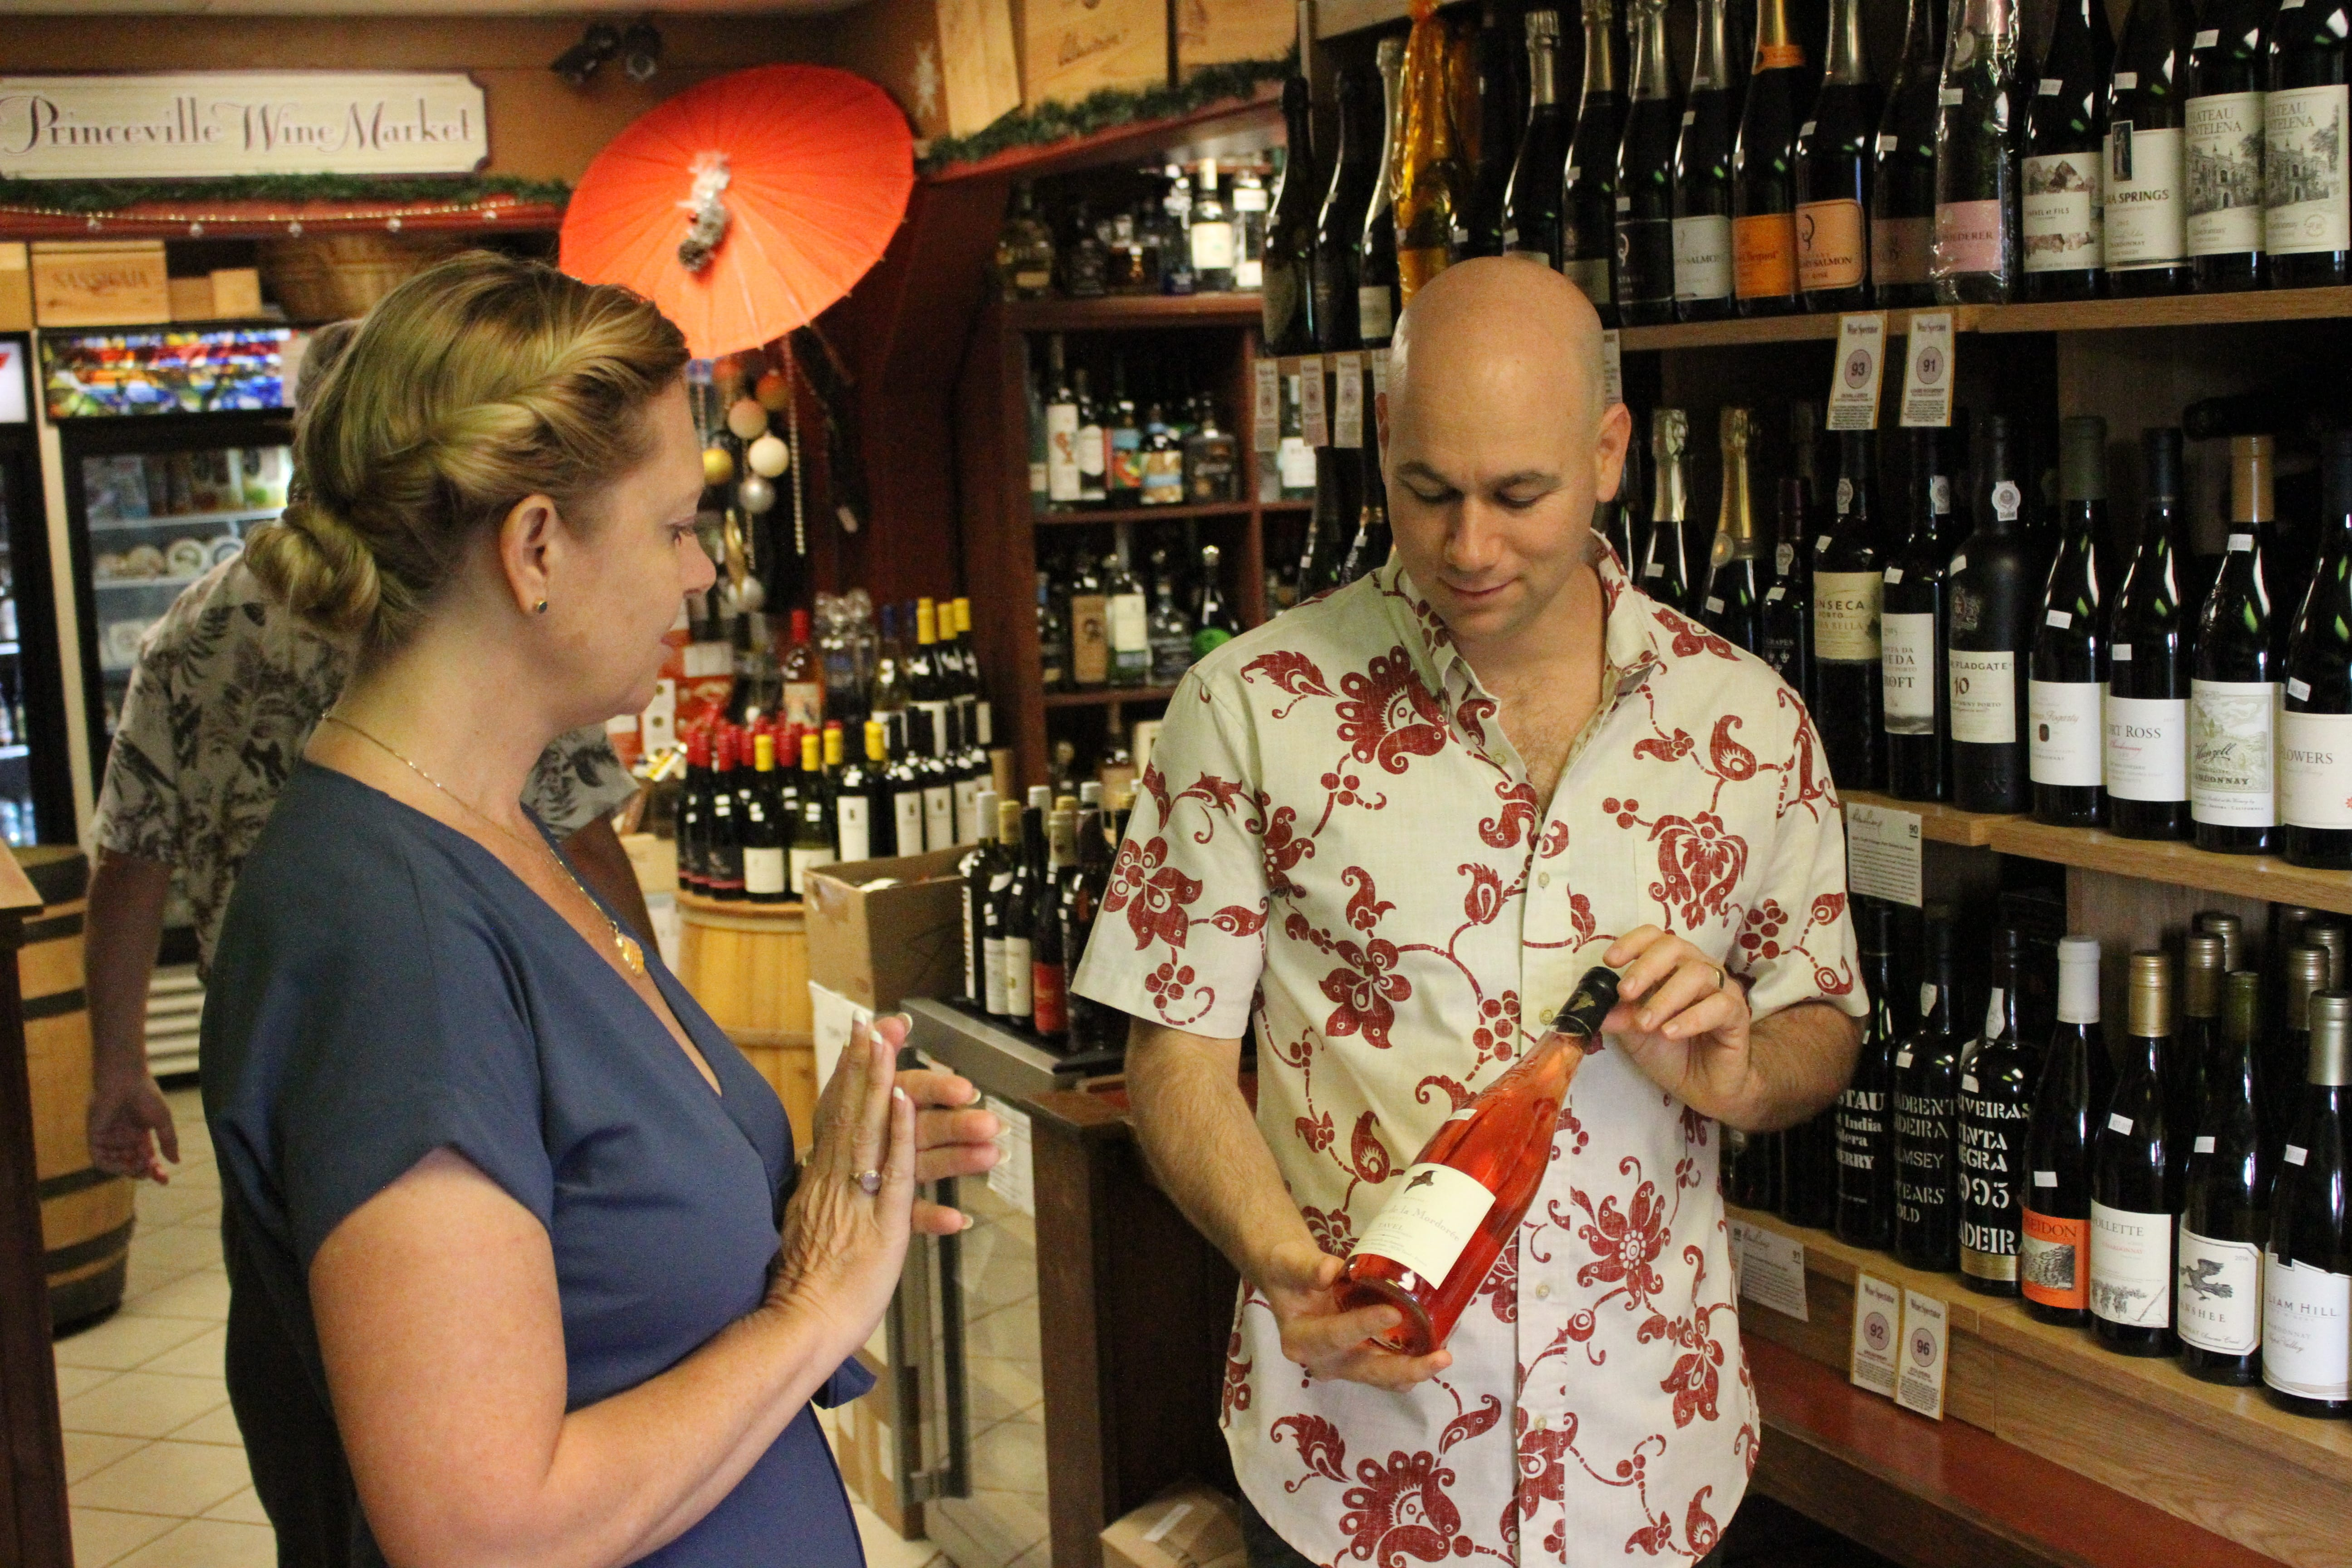 Daniel Braun discusses a wine at the Princeville Wine Market. We are all about matching the right person to the right wine.